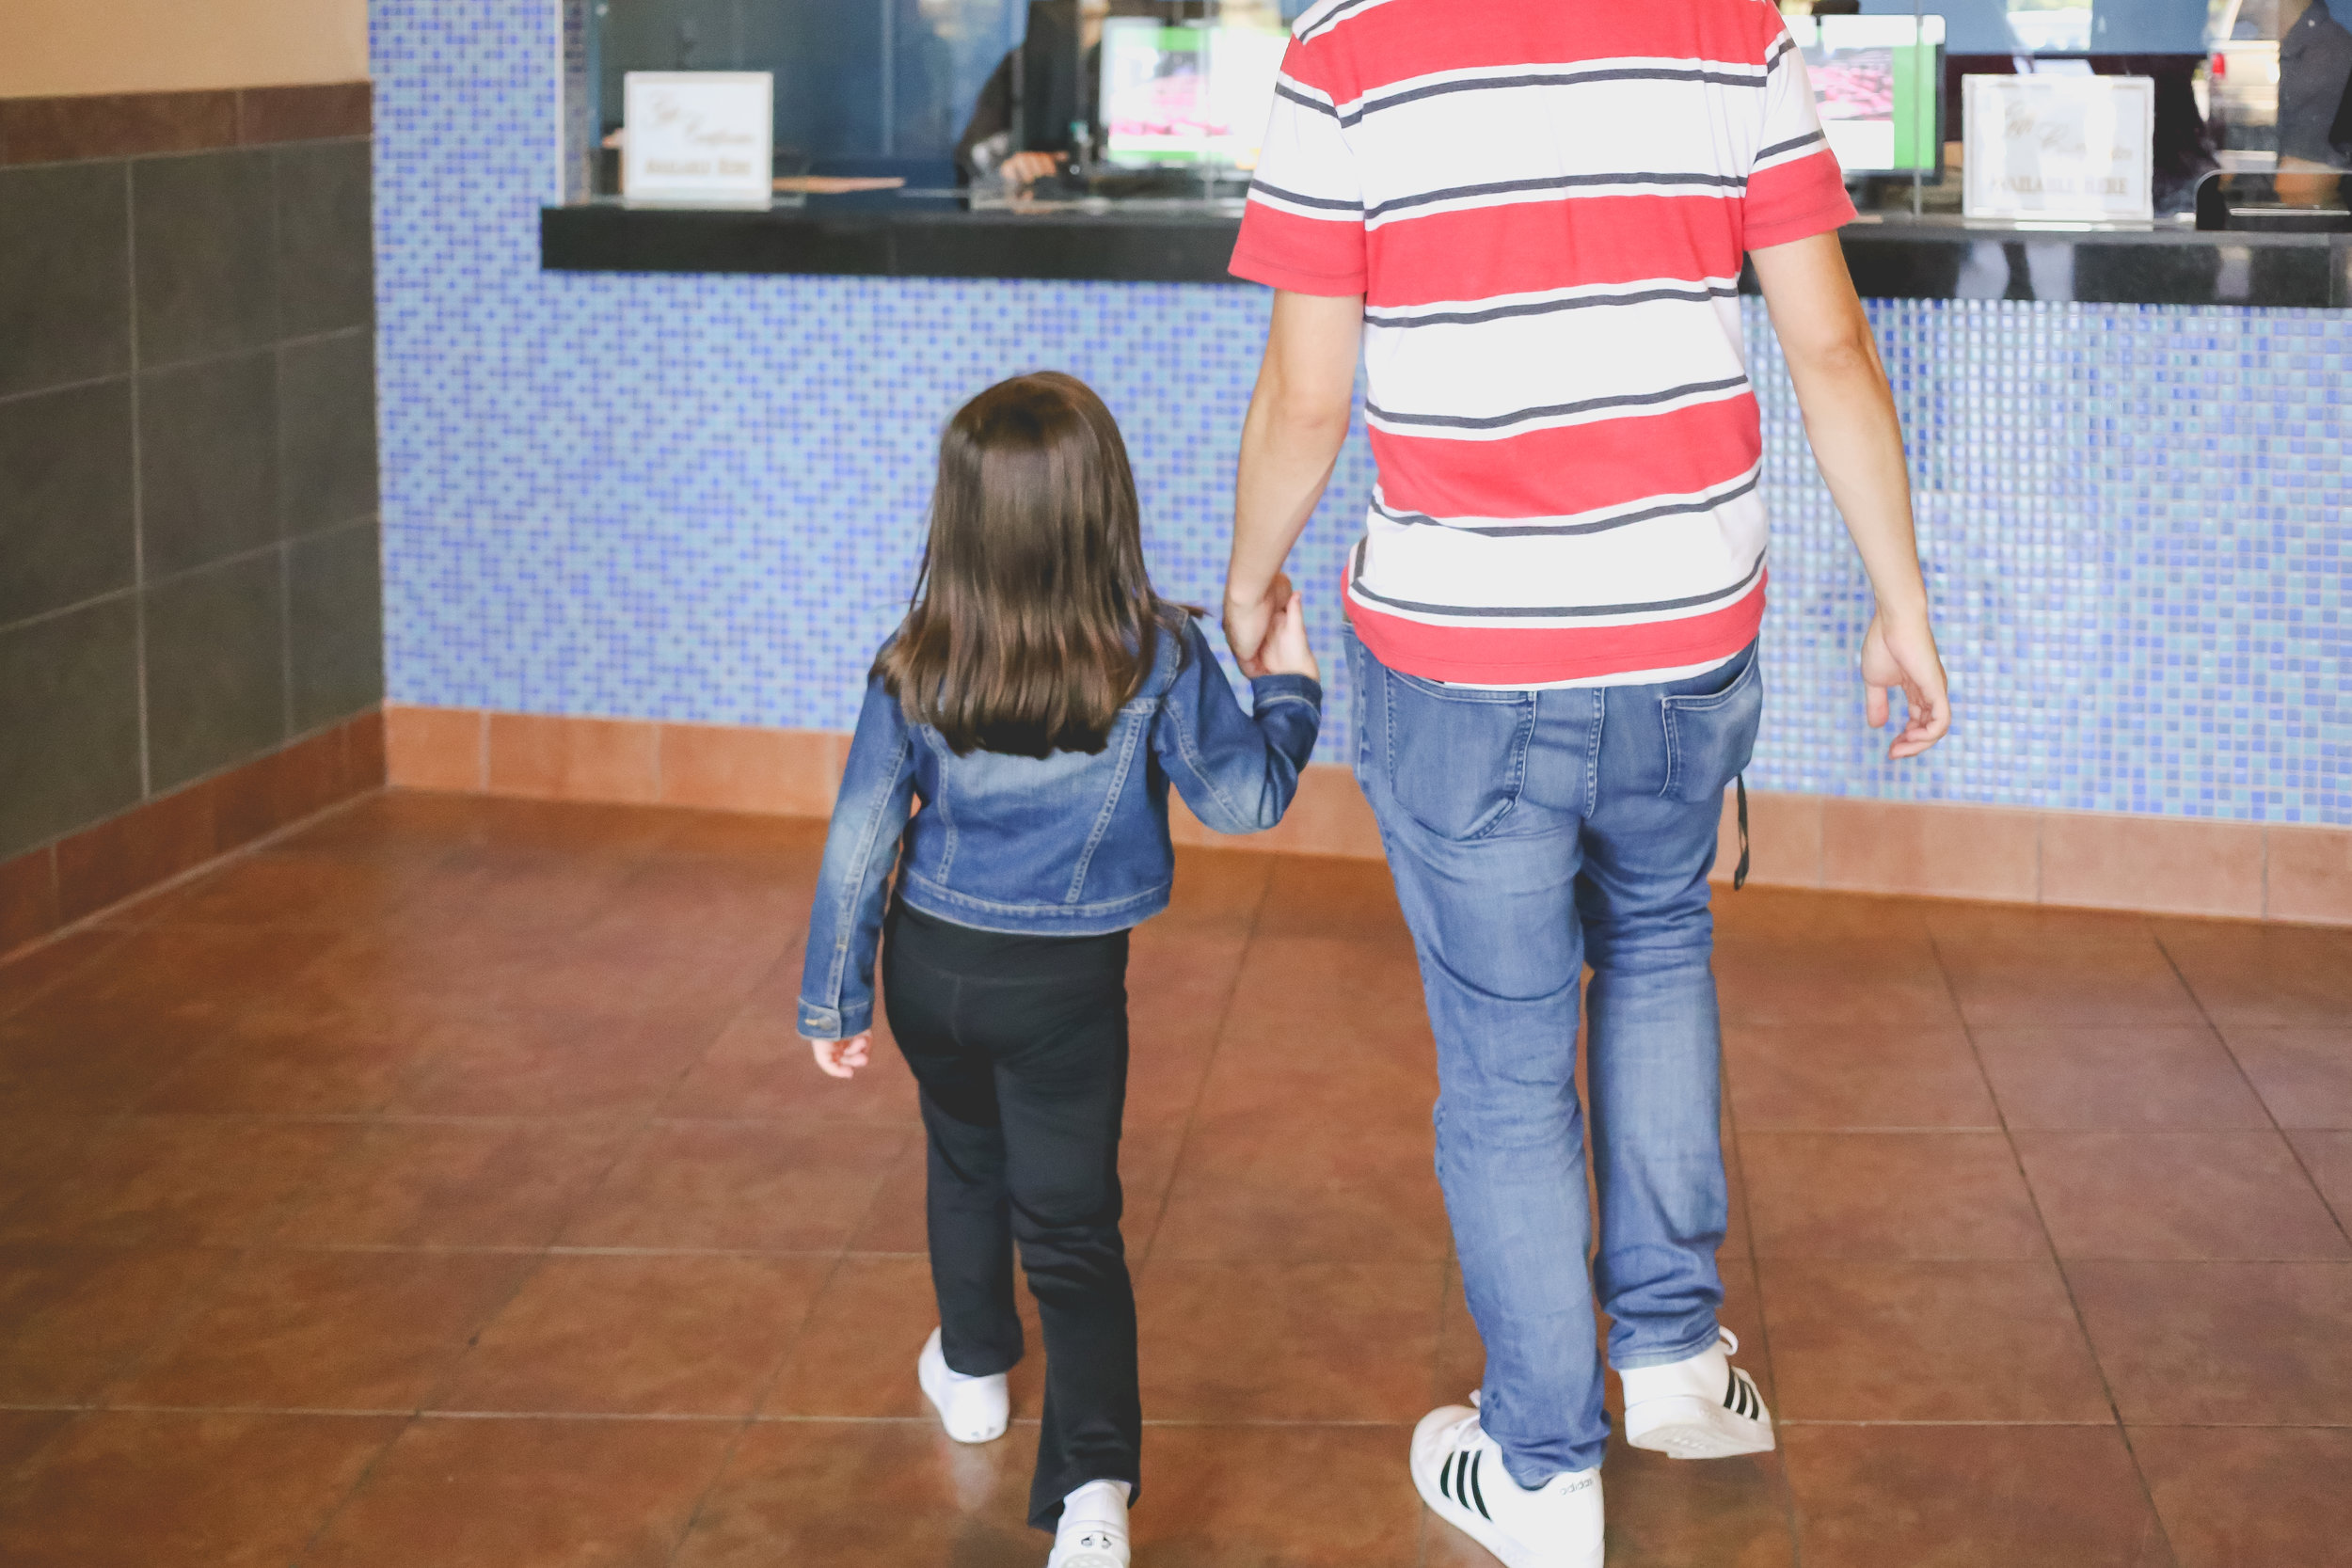 Arriving at The Atrium movie theater in Staten Island, NY. Day in the Life family photography.